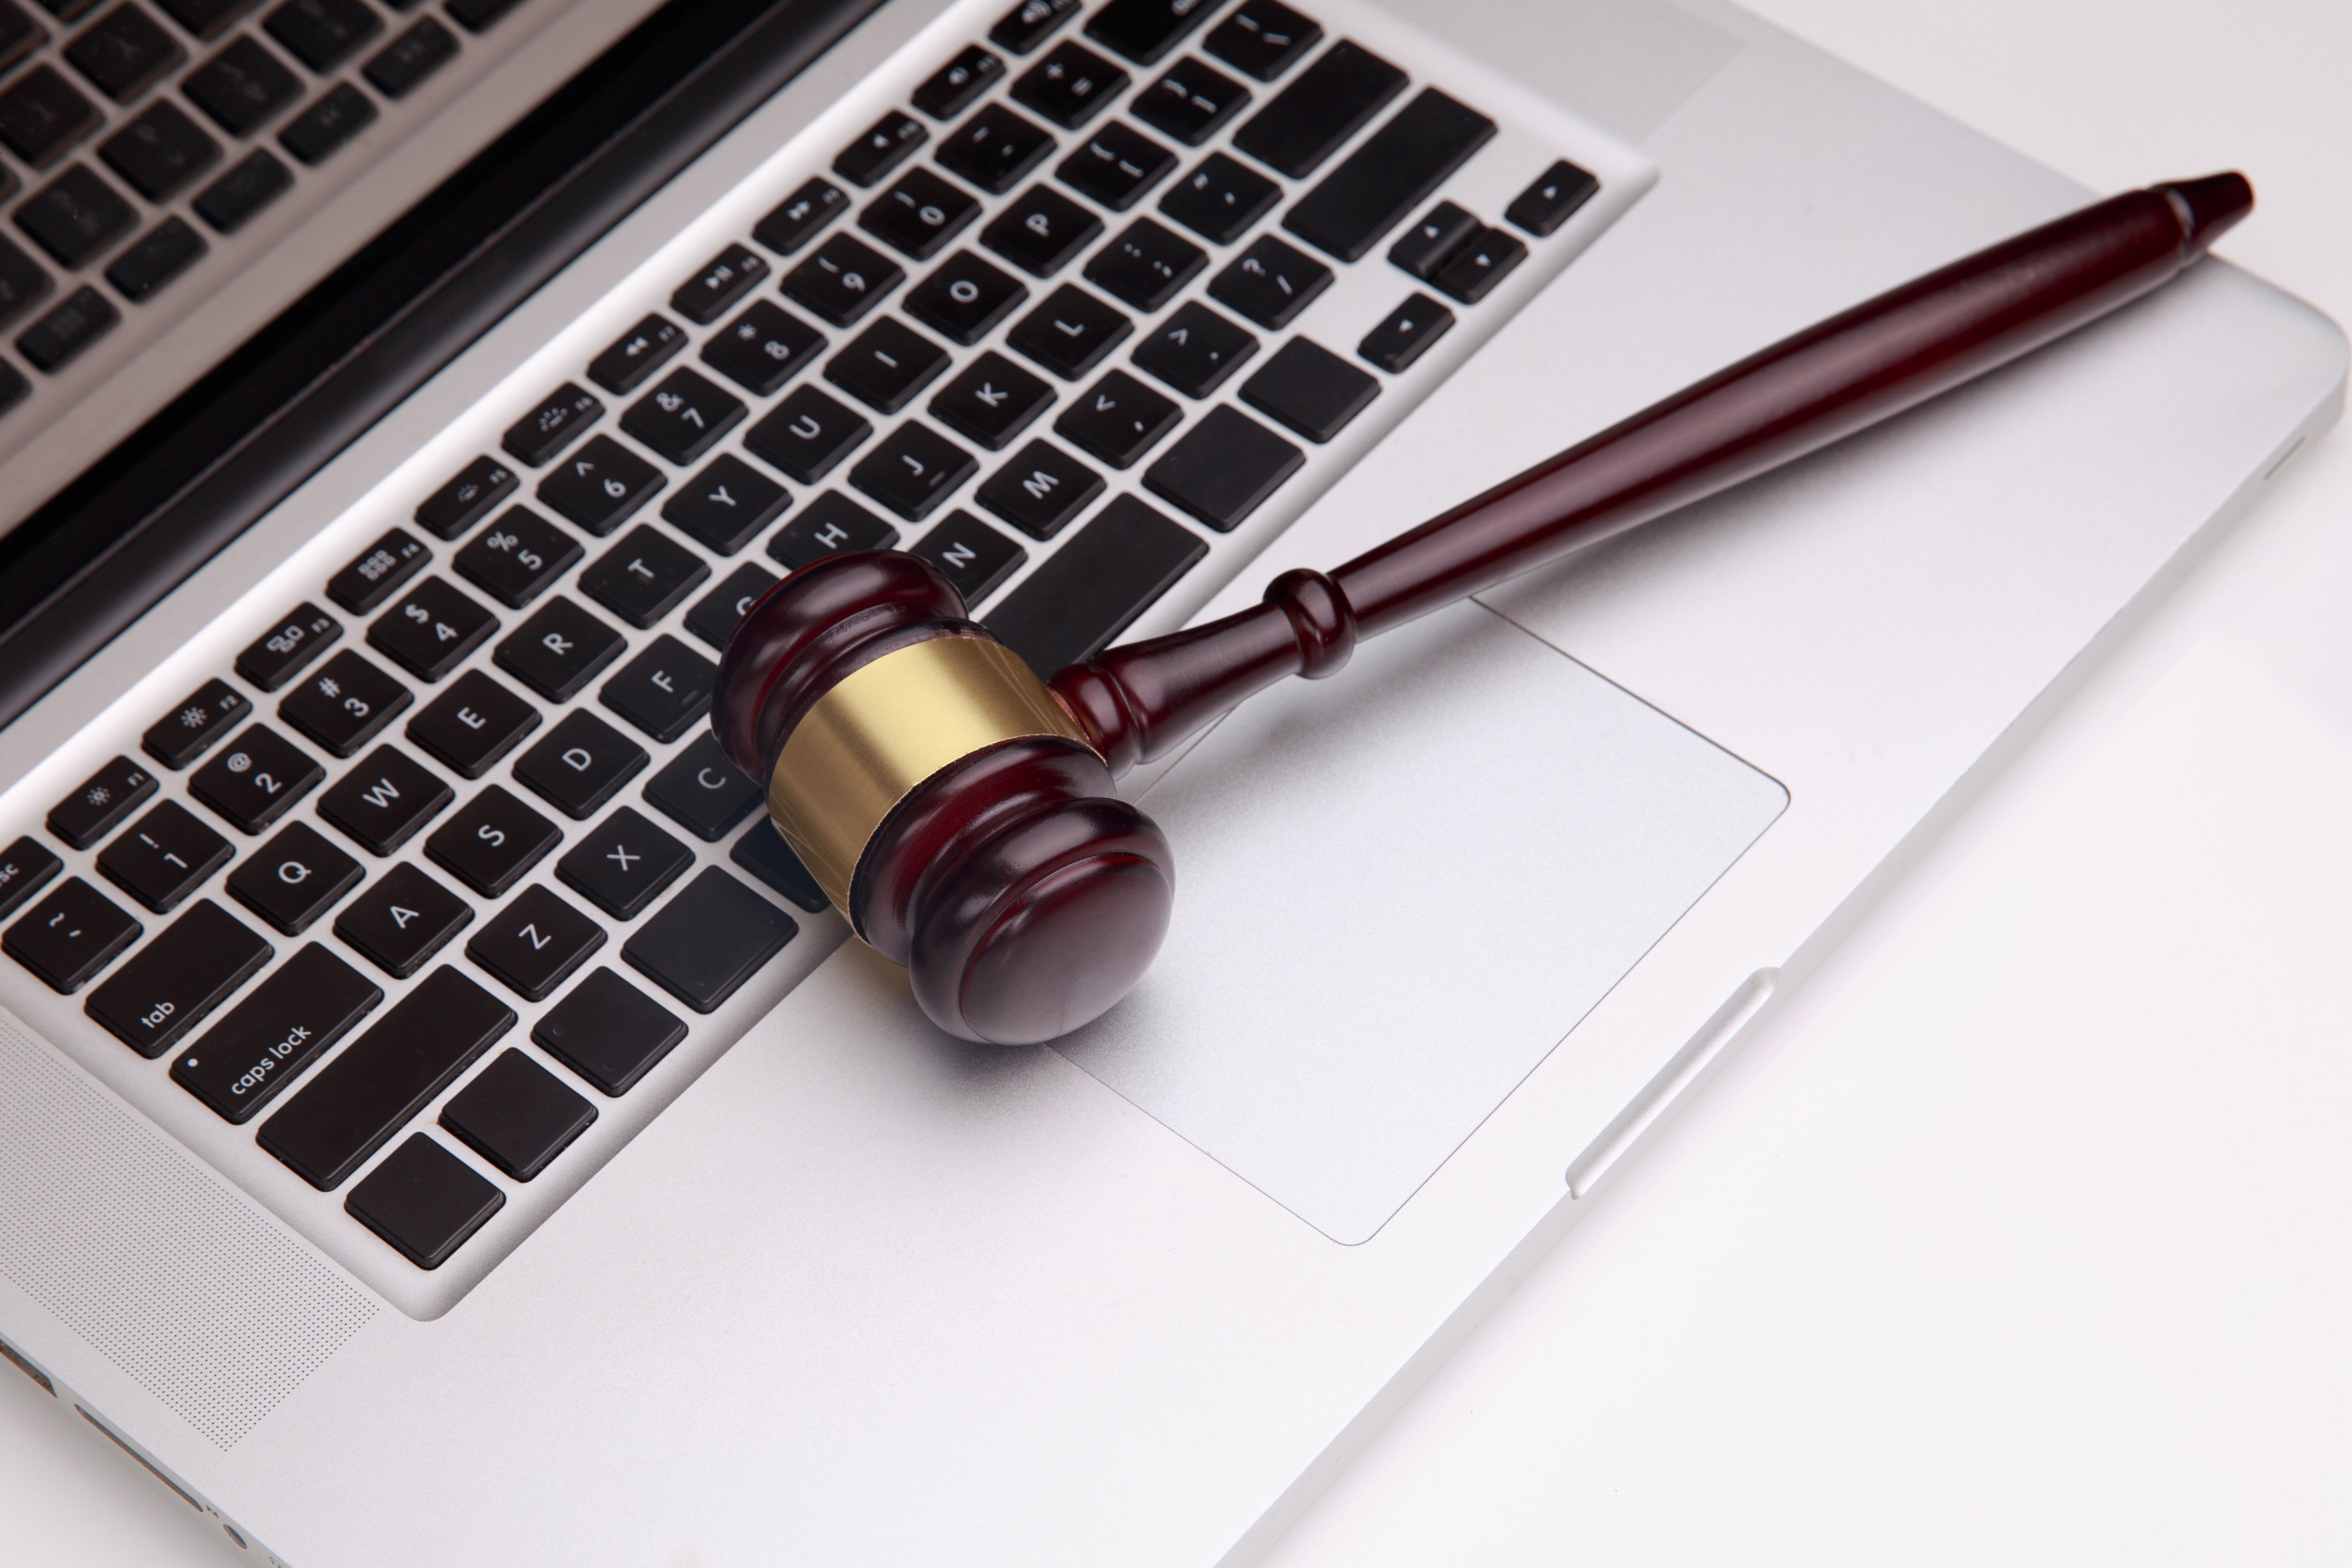 Law Firms Need to Prioritize Privilege to Protect Client